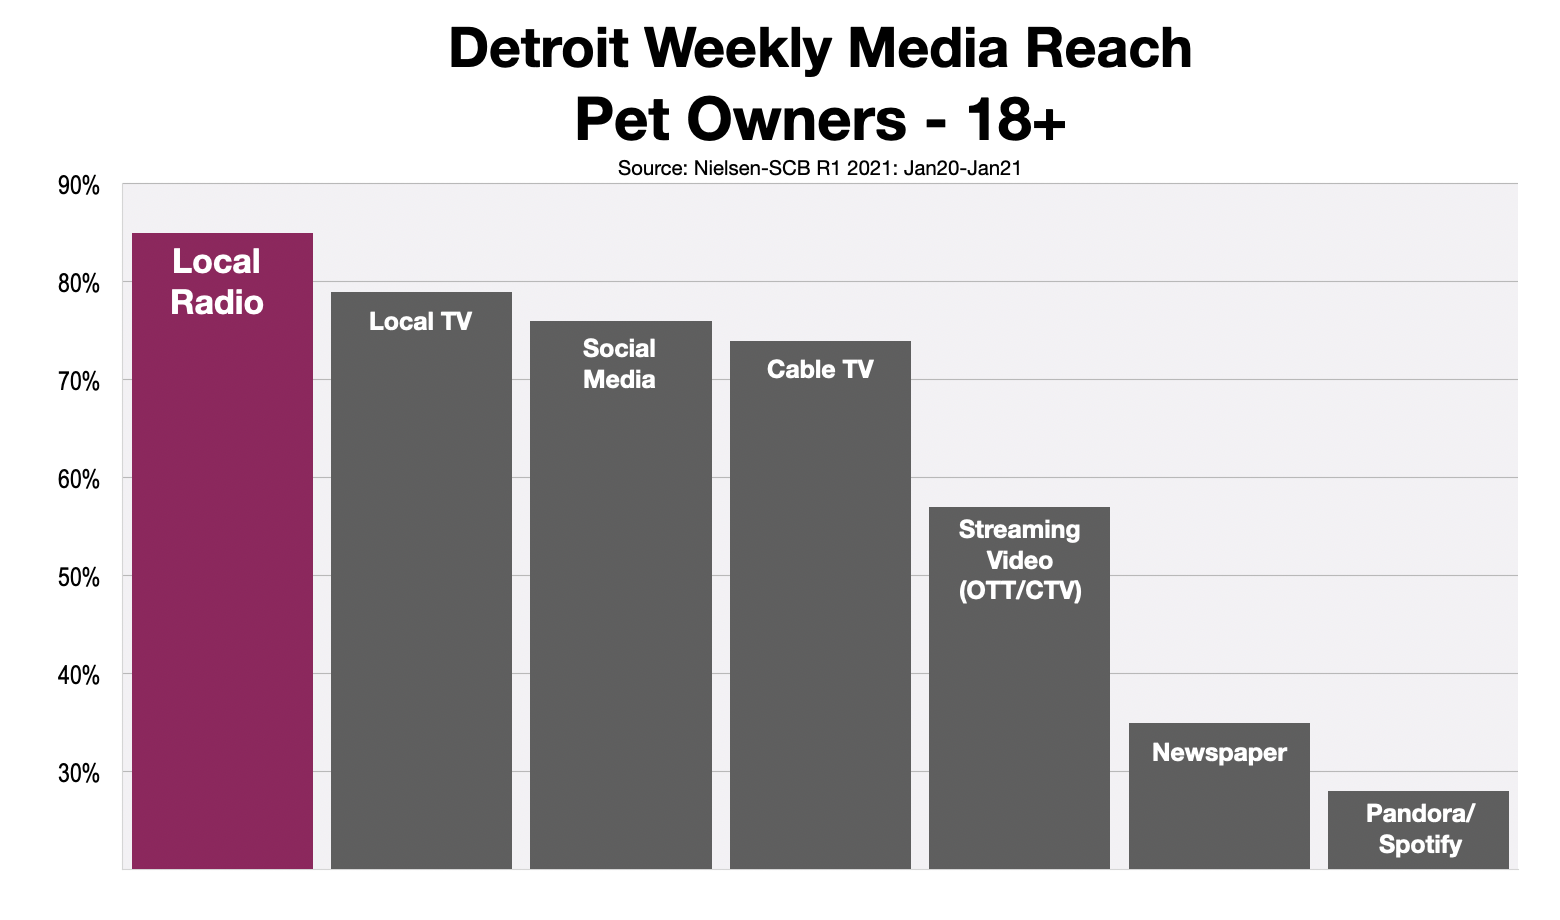 Advertise To Pet Owners in Detroit